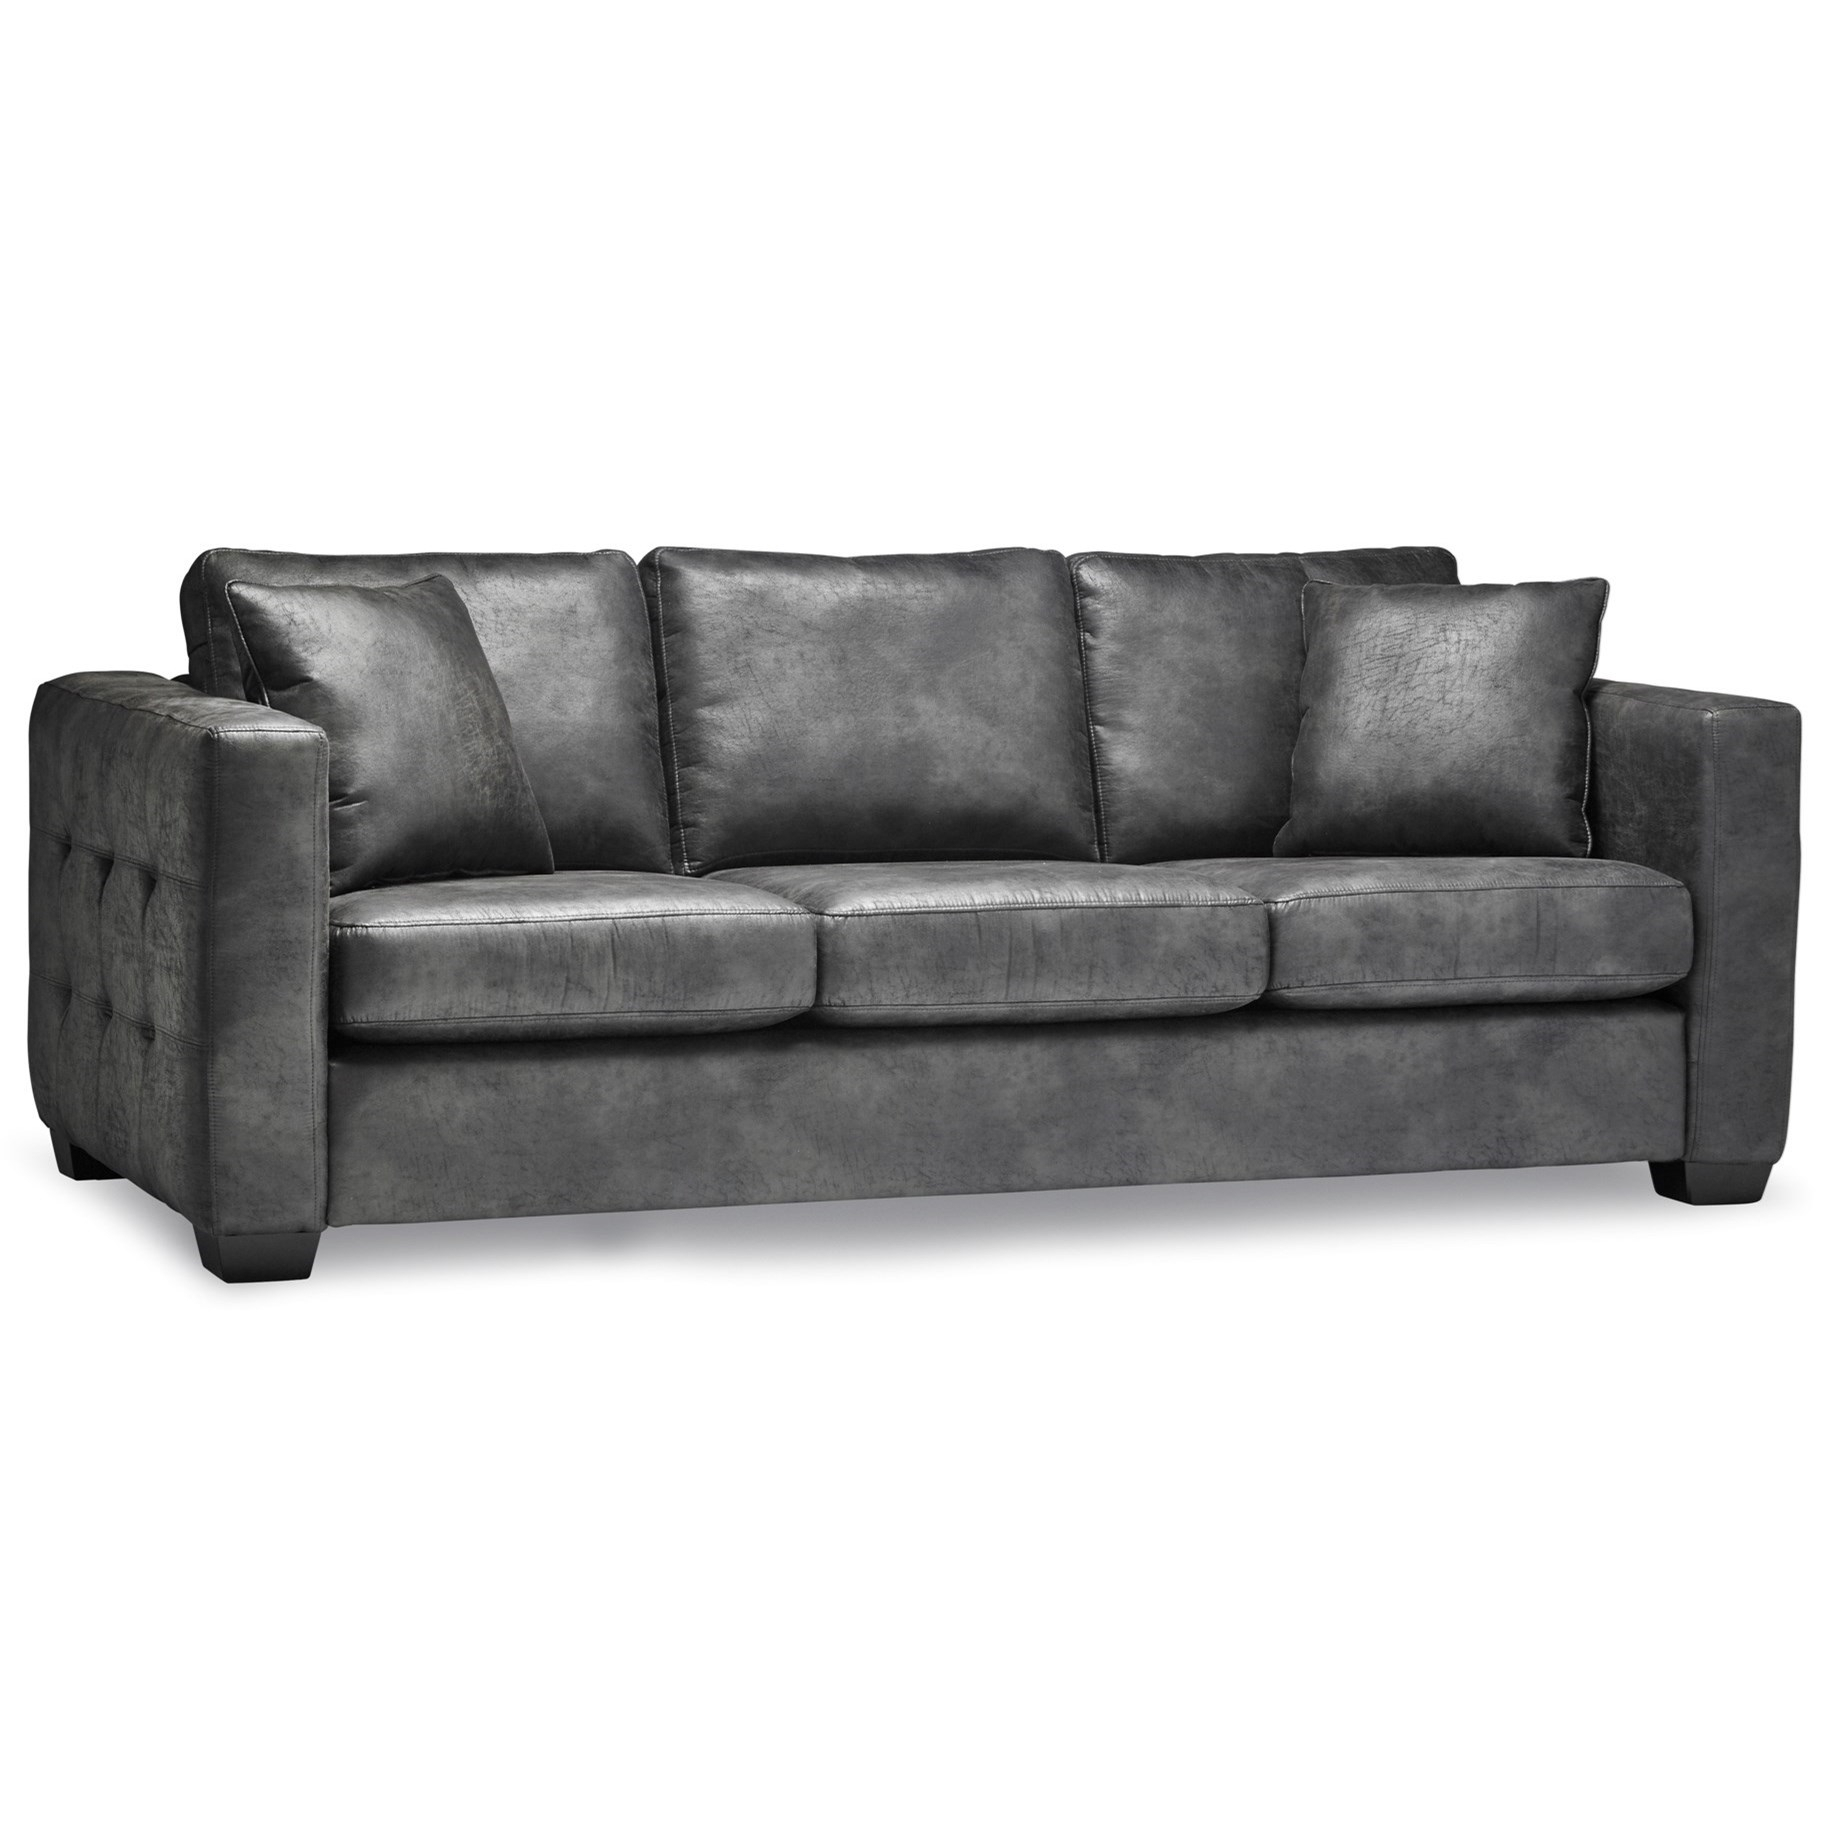 2019 Best Of Vaughan Sectional Sofas